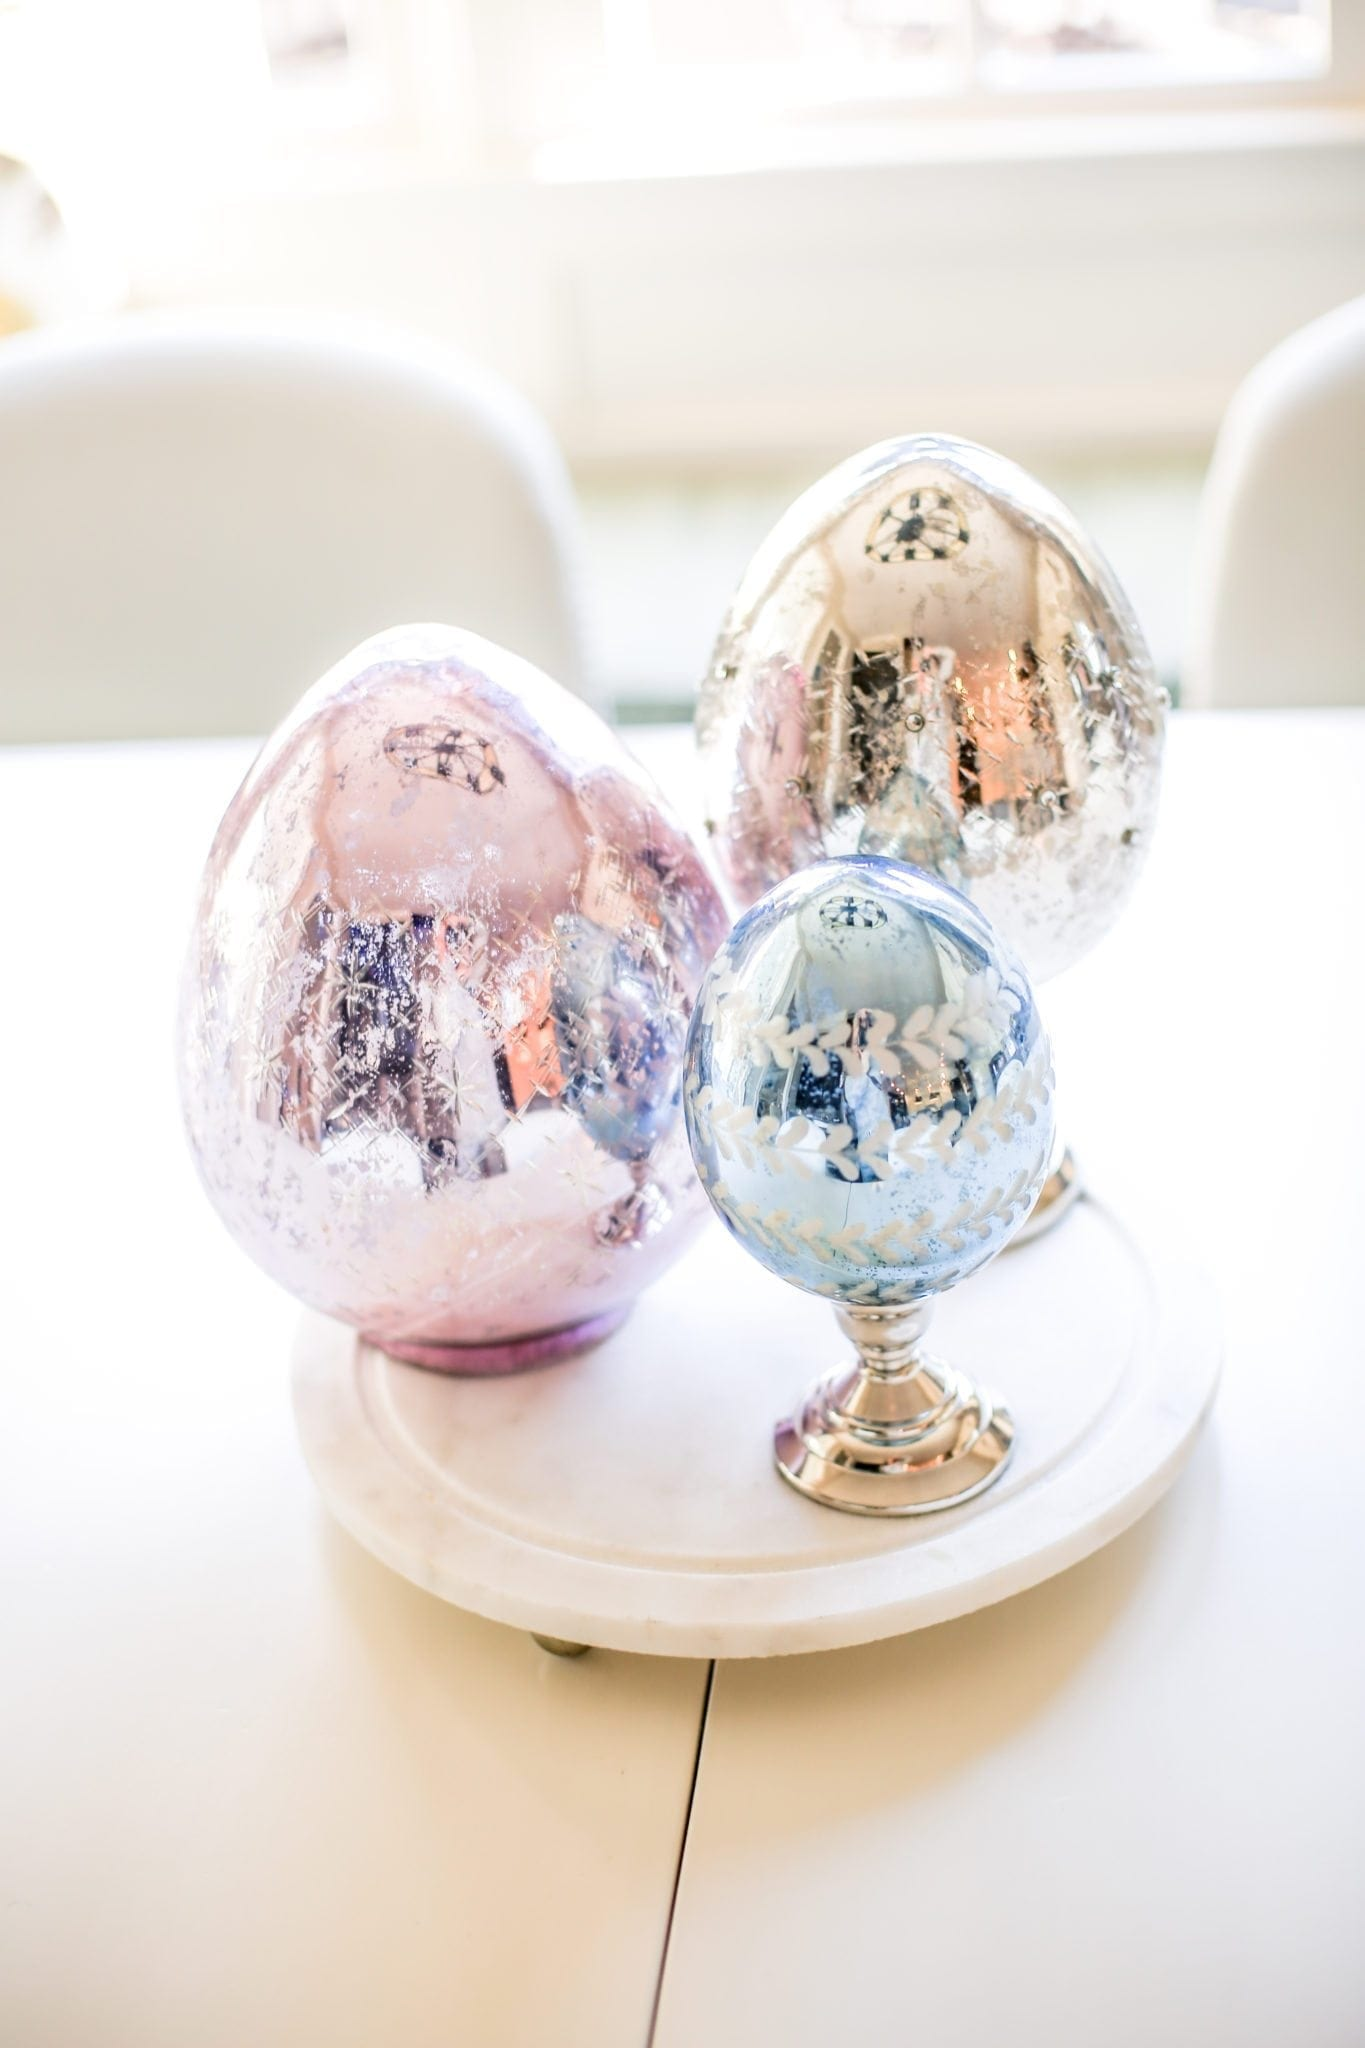 Mercury Glass Eggs on Pedestals. Easter egg decorations.